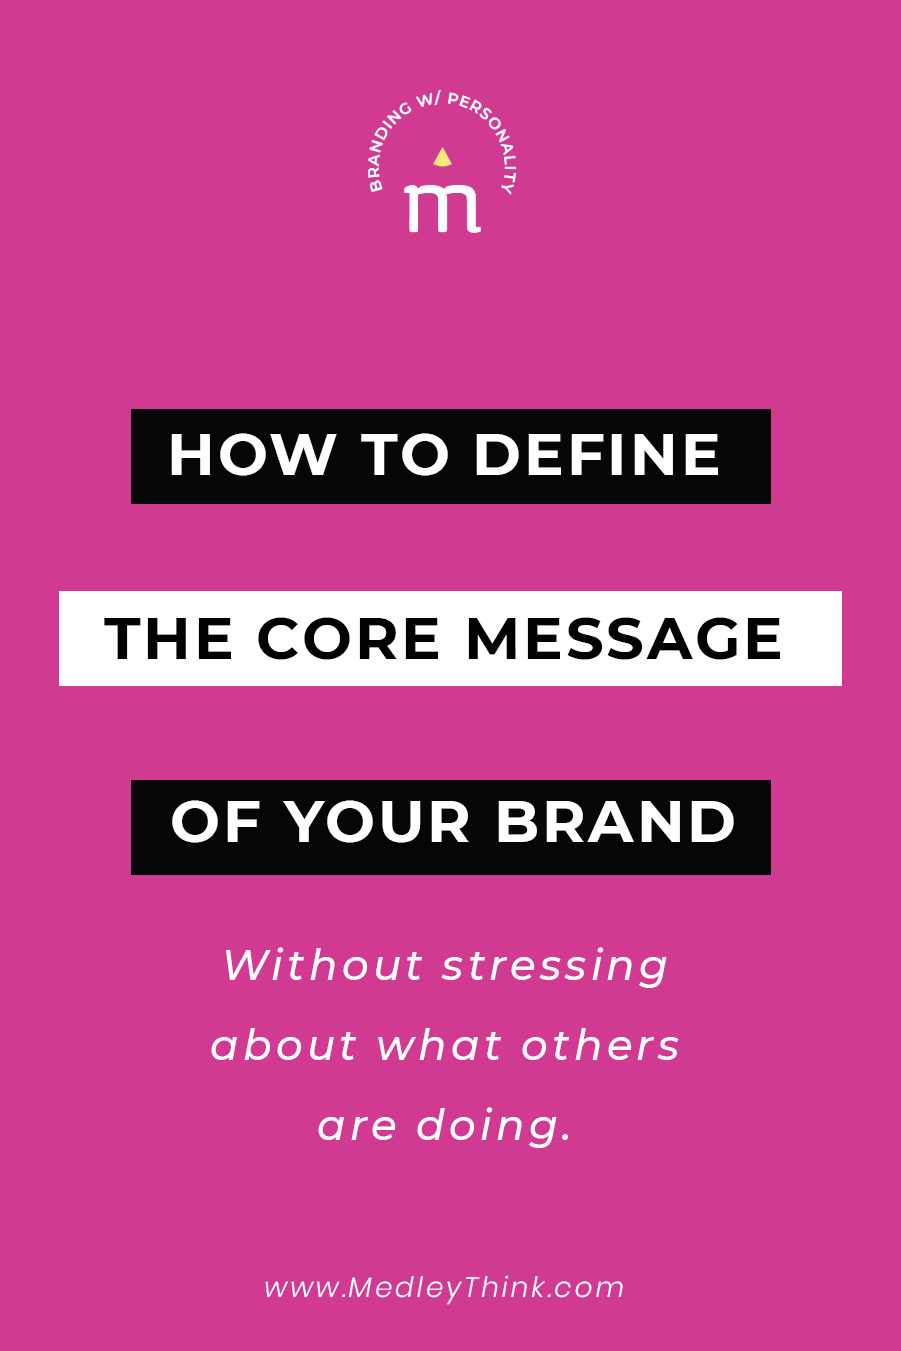 How to Define Your Brand\'s Core Message & Why is it Important to Do So?